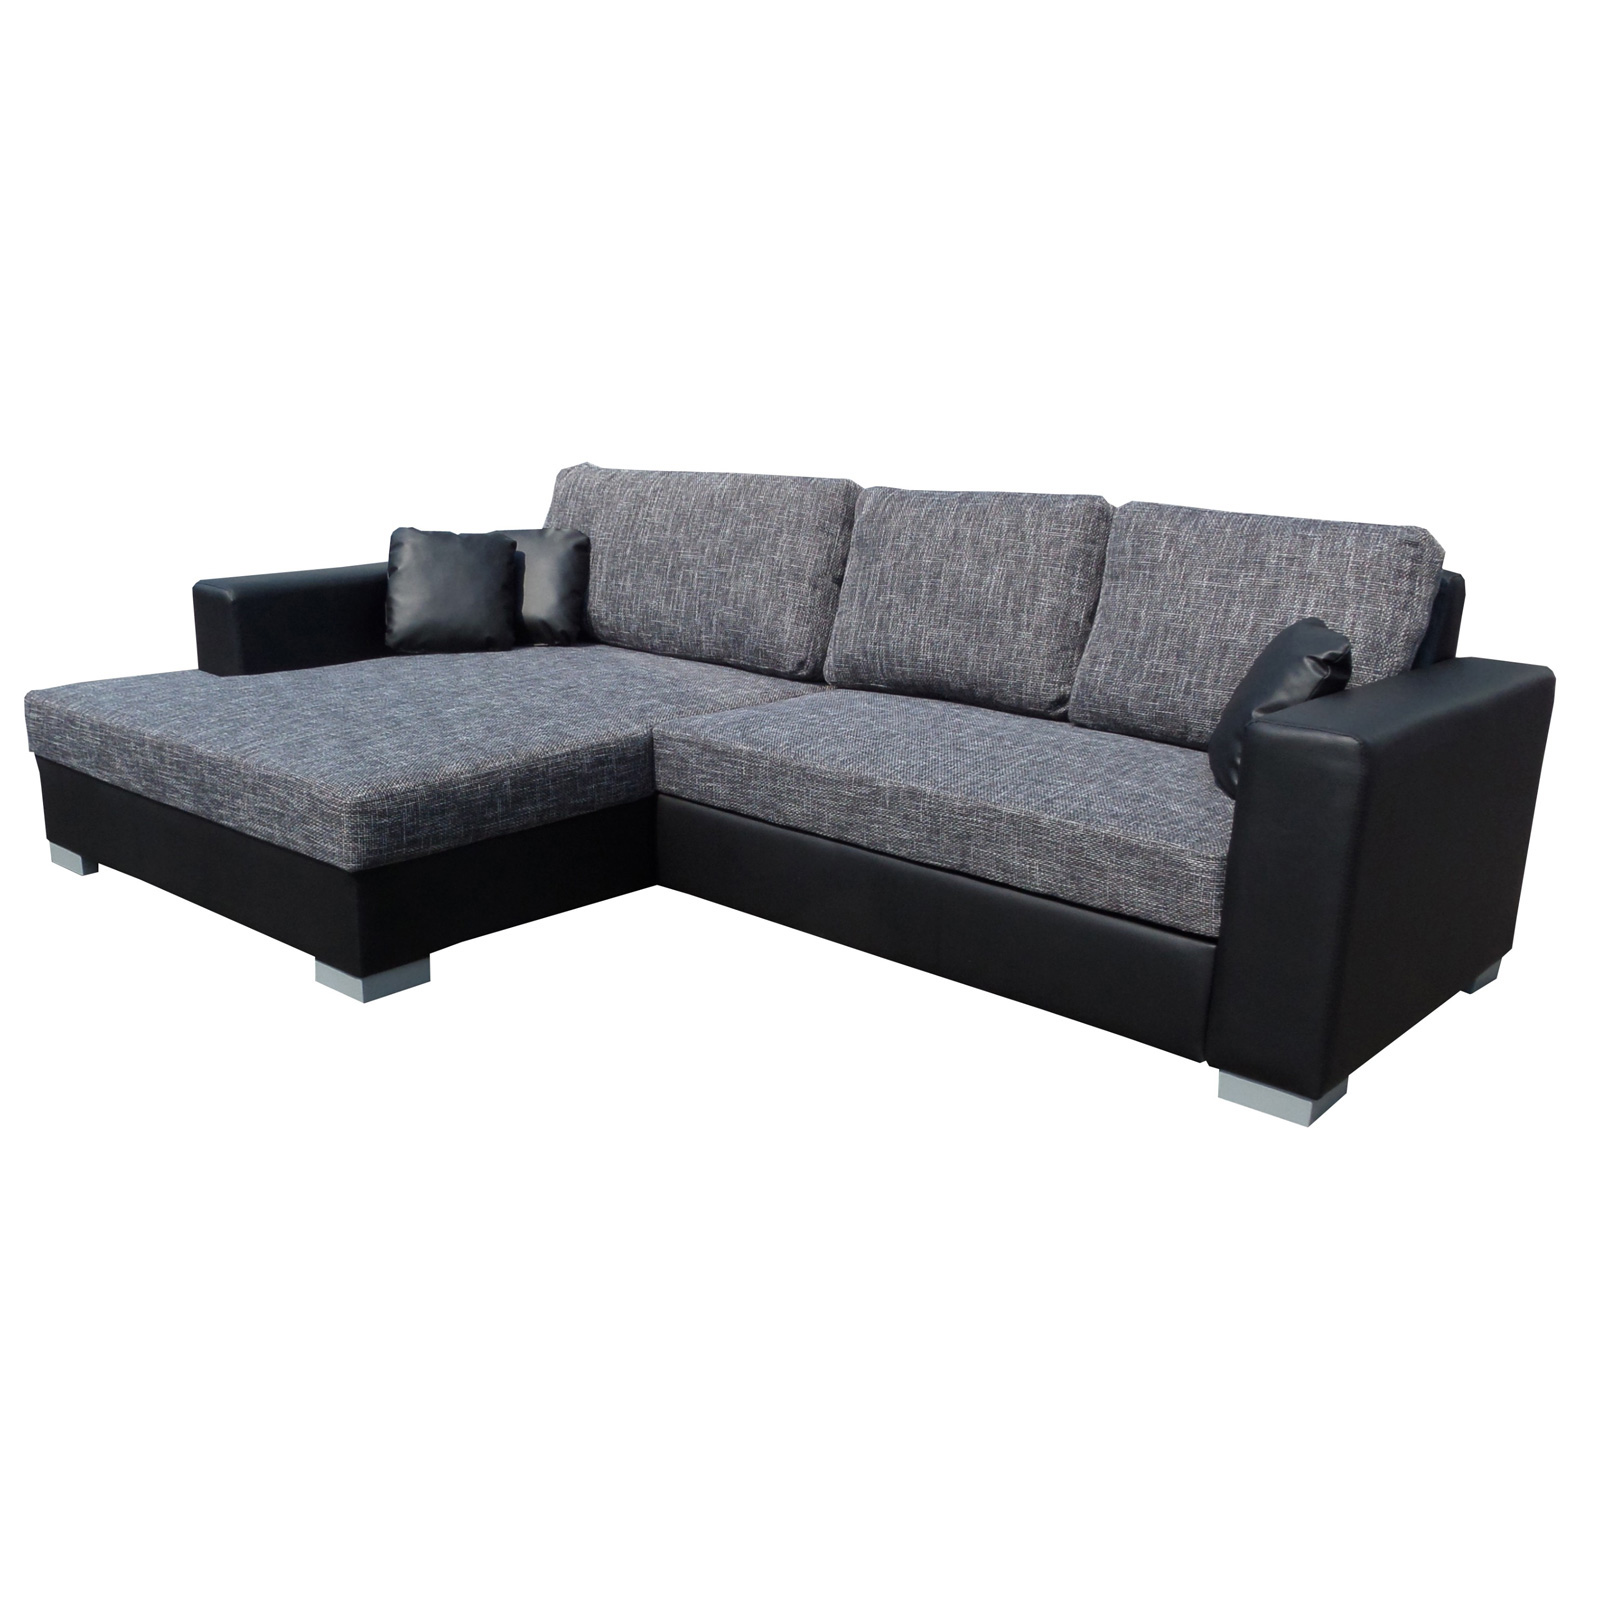 ecksofa flamenco couch mit schlaffunktion lederlook. Black Bedroom Furniture Sets. Home Design Ideas